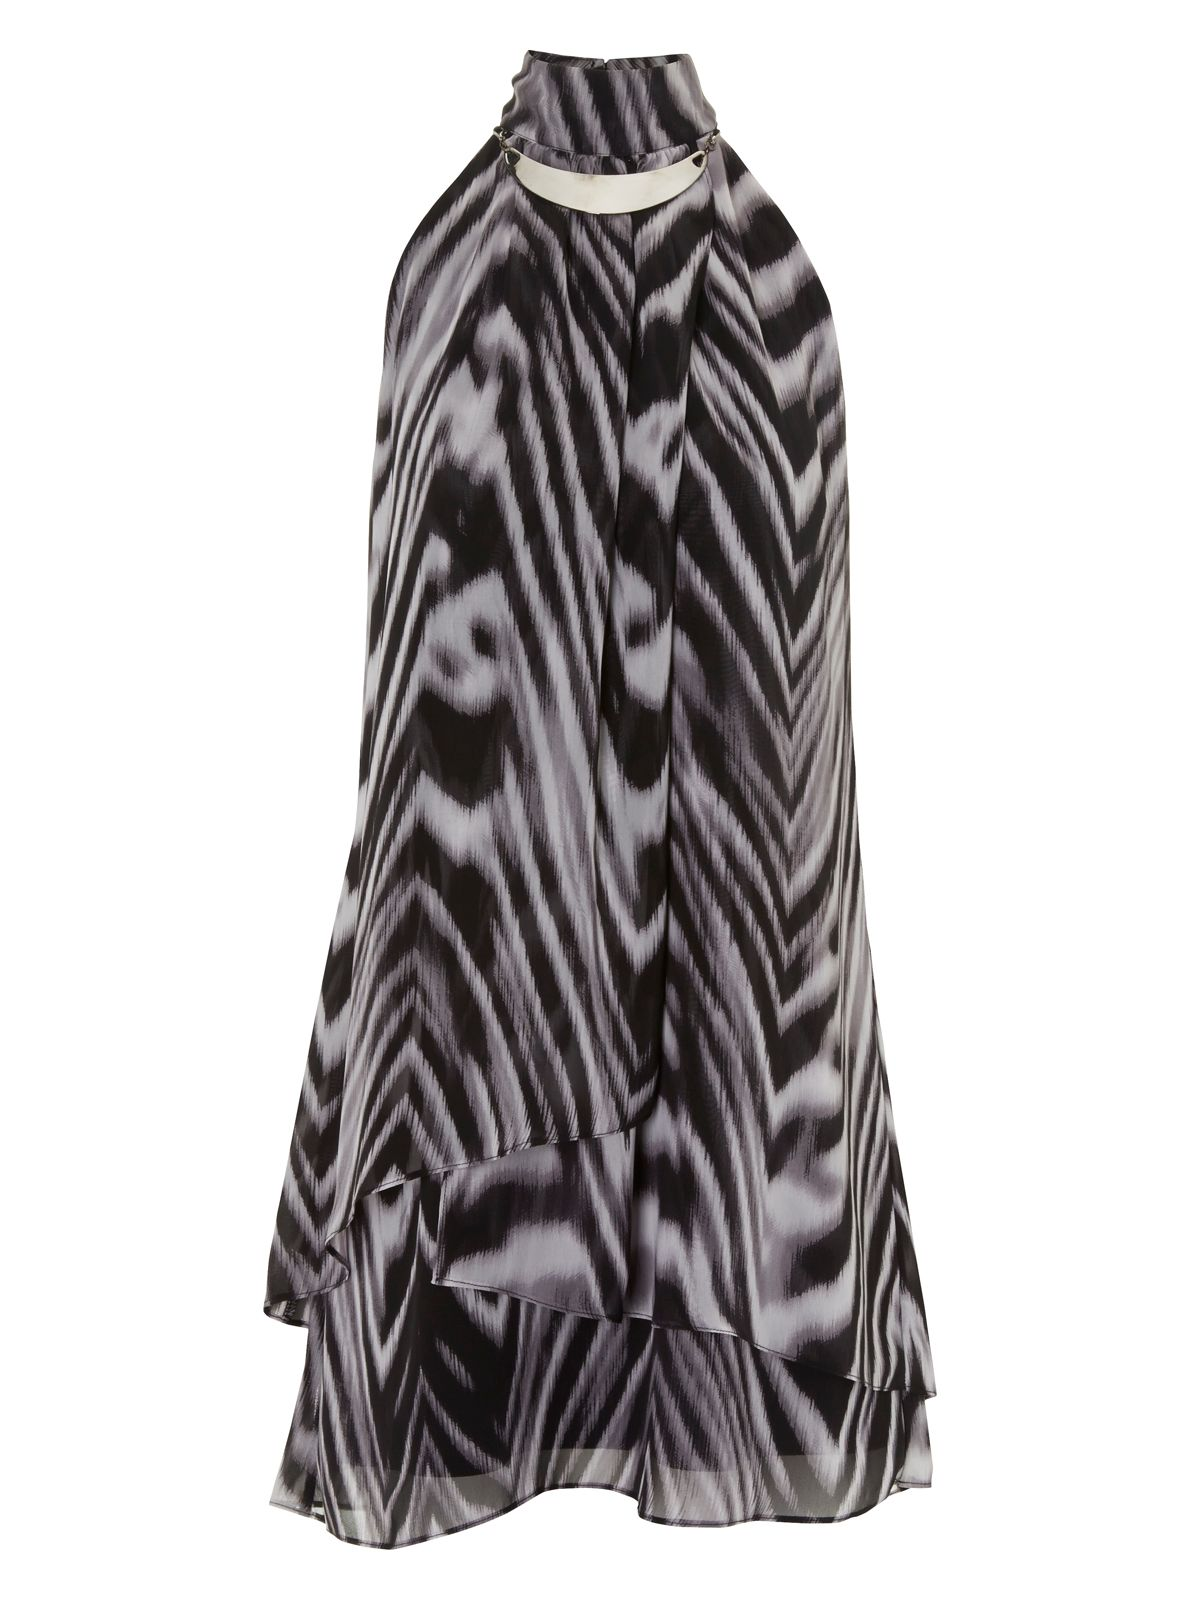 Animal print high neck dress